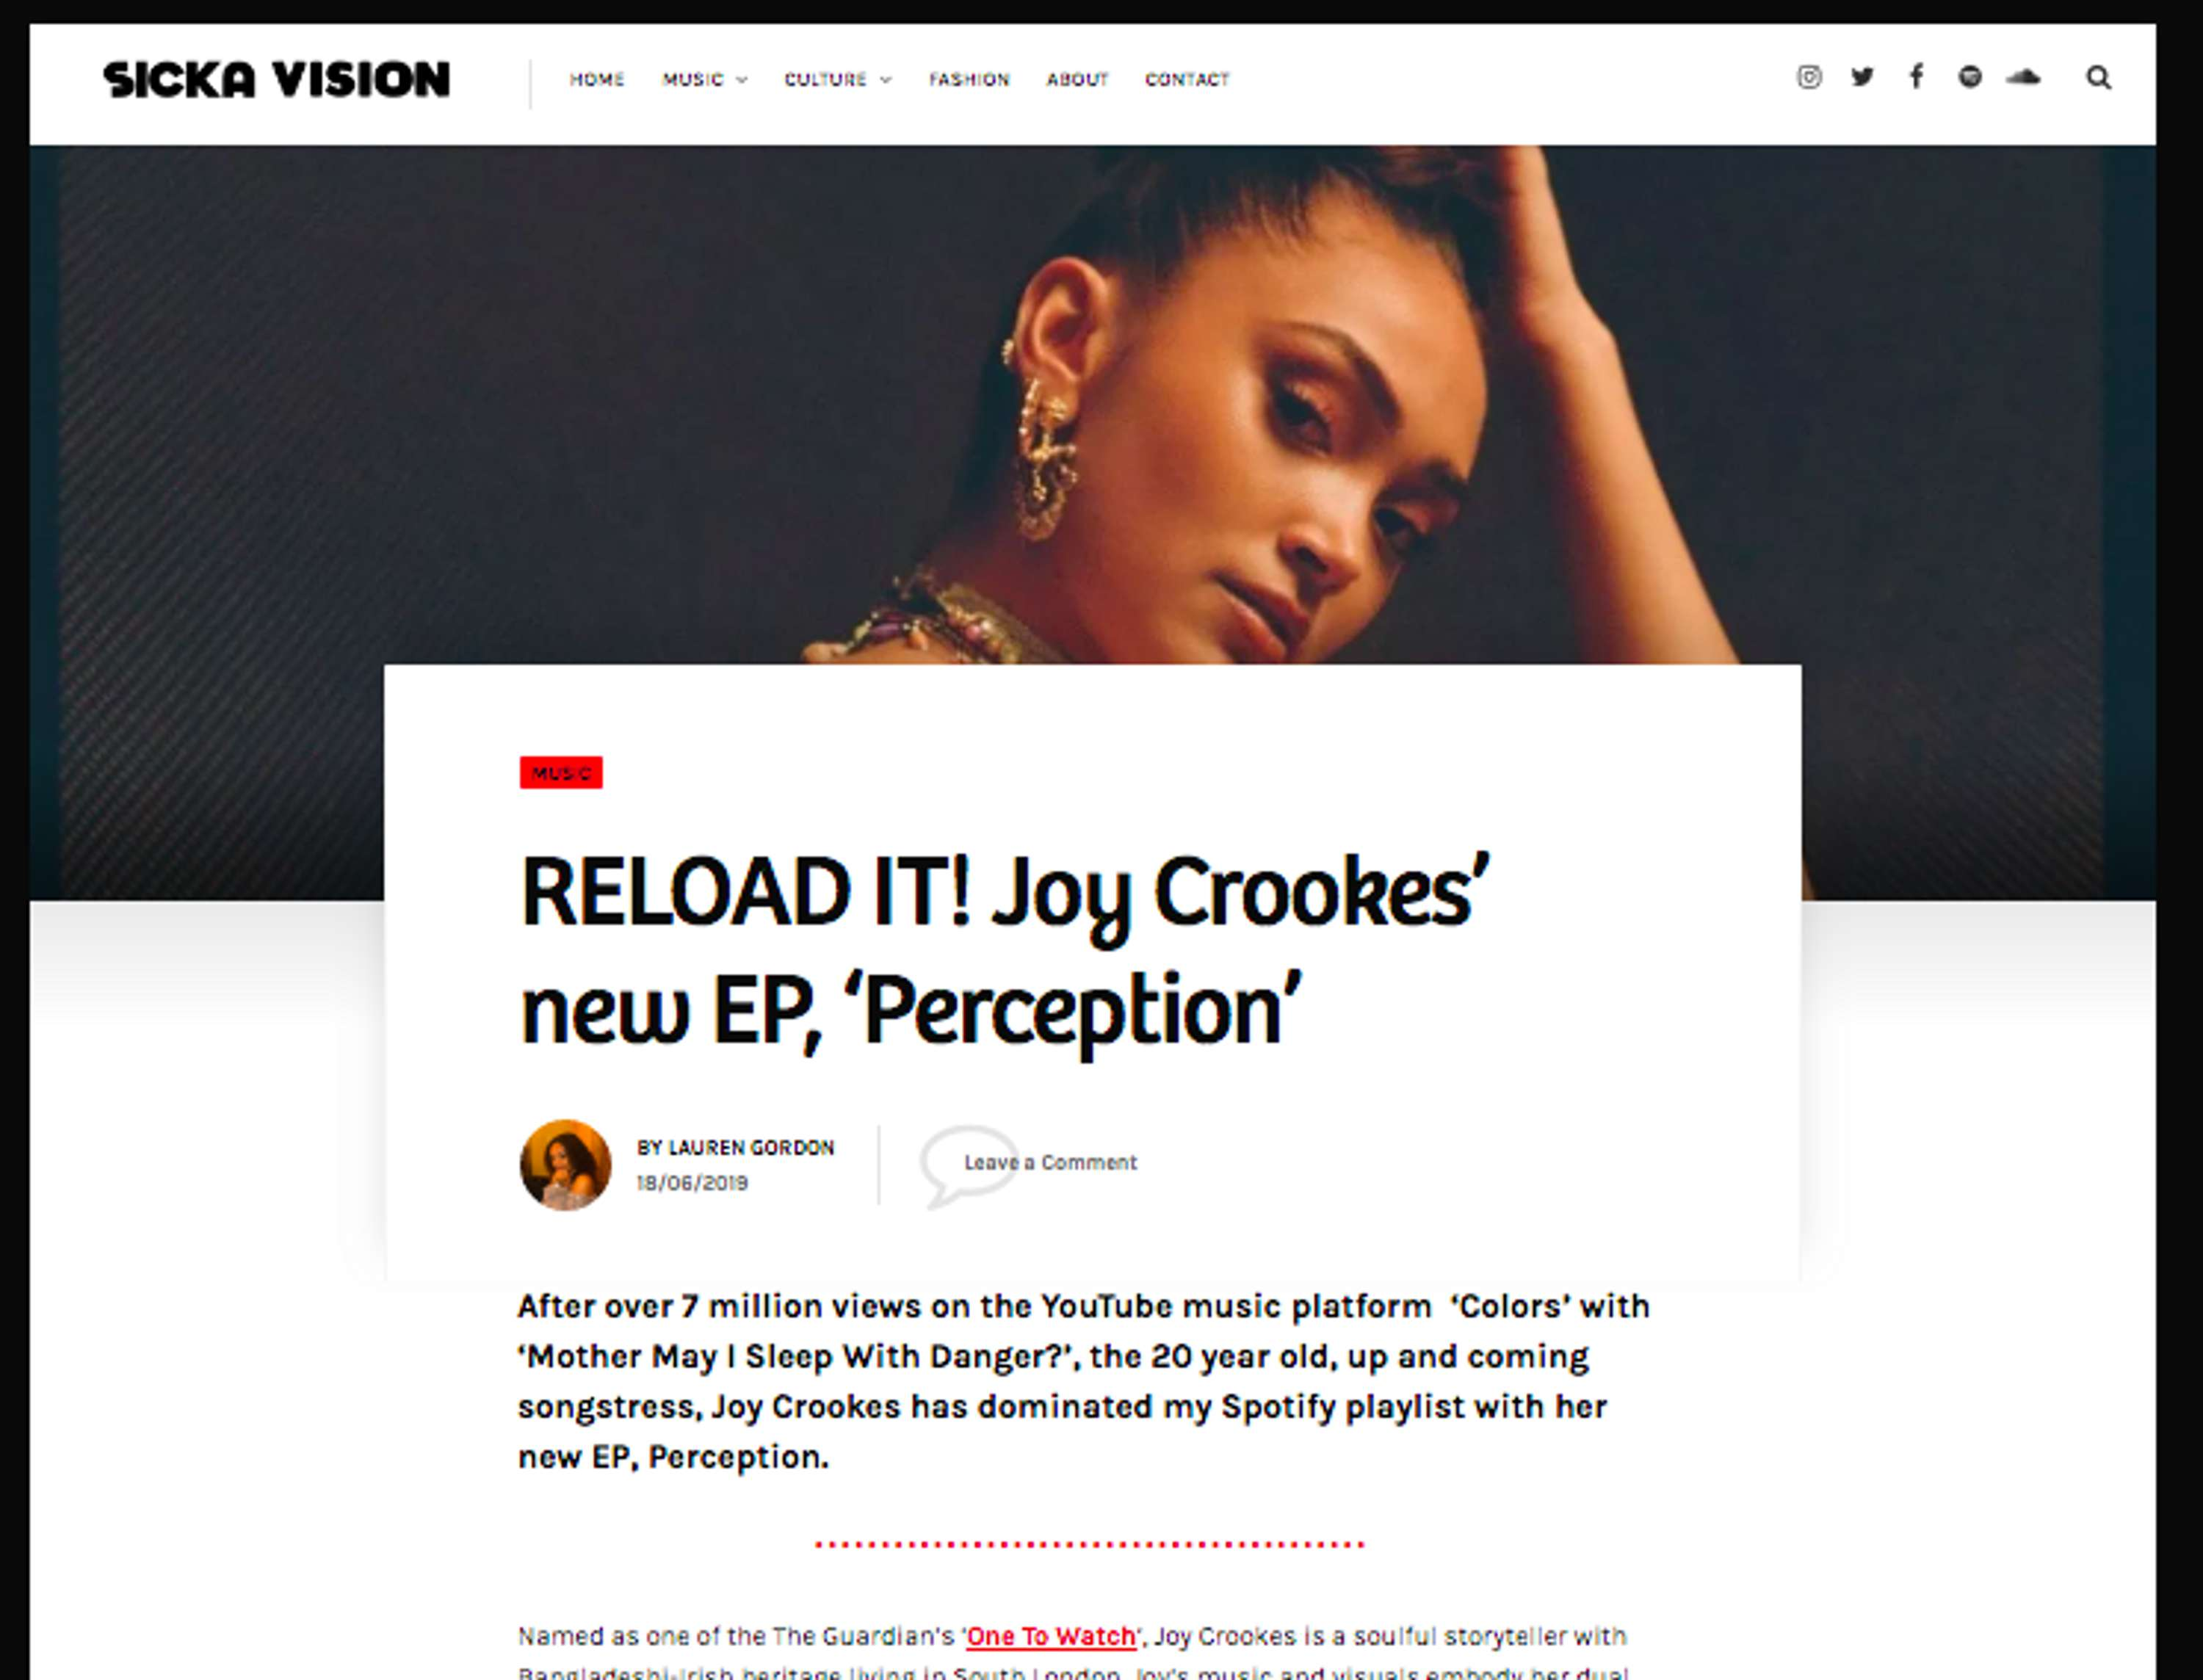 RELOAD IT! Joy Crookes' new EP, 'Perception' | The Dots